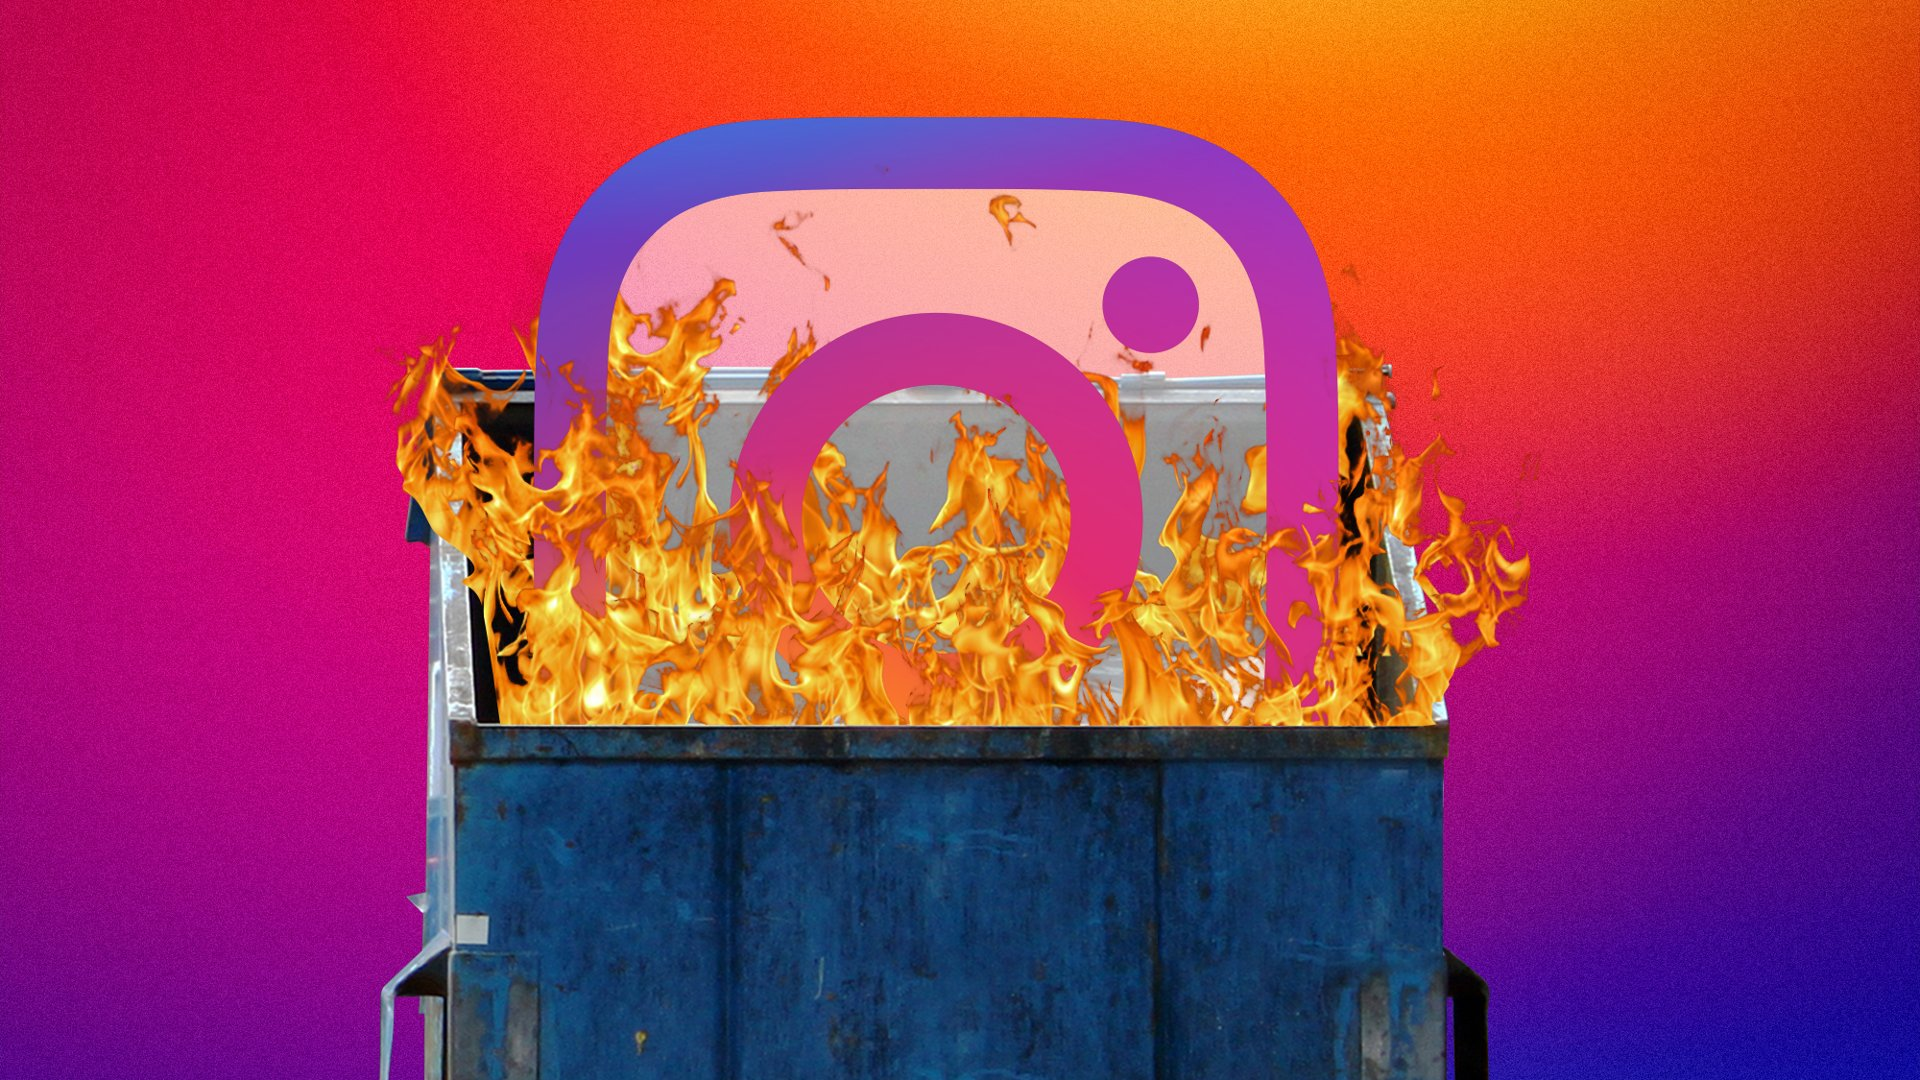 Instagram Has a Massive Harassment Problem - The Atlantic